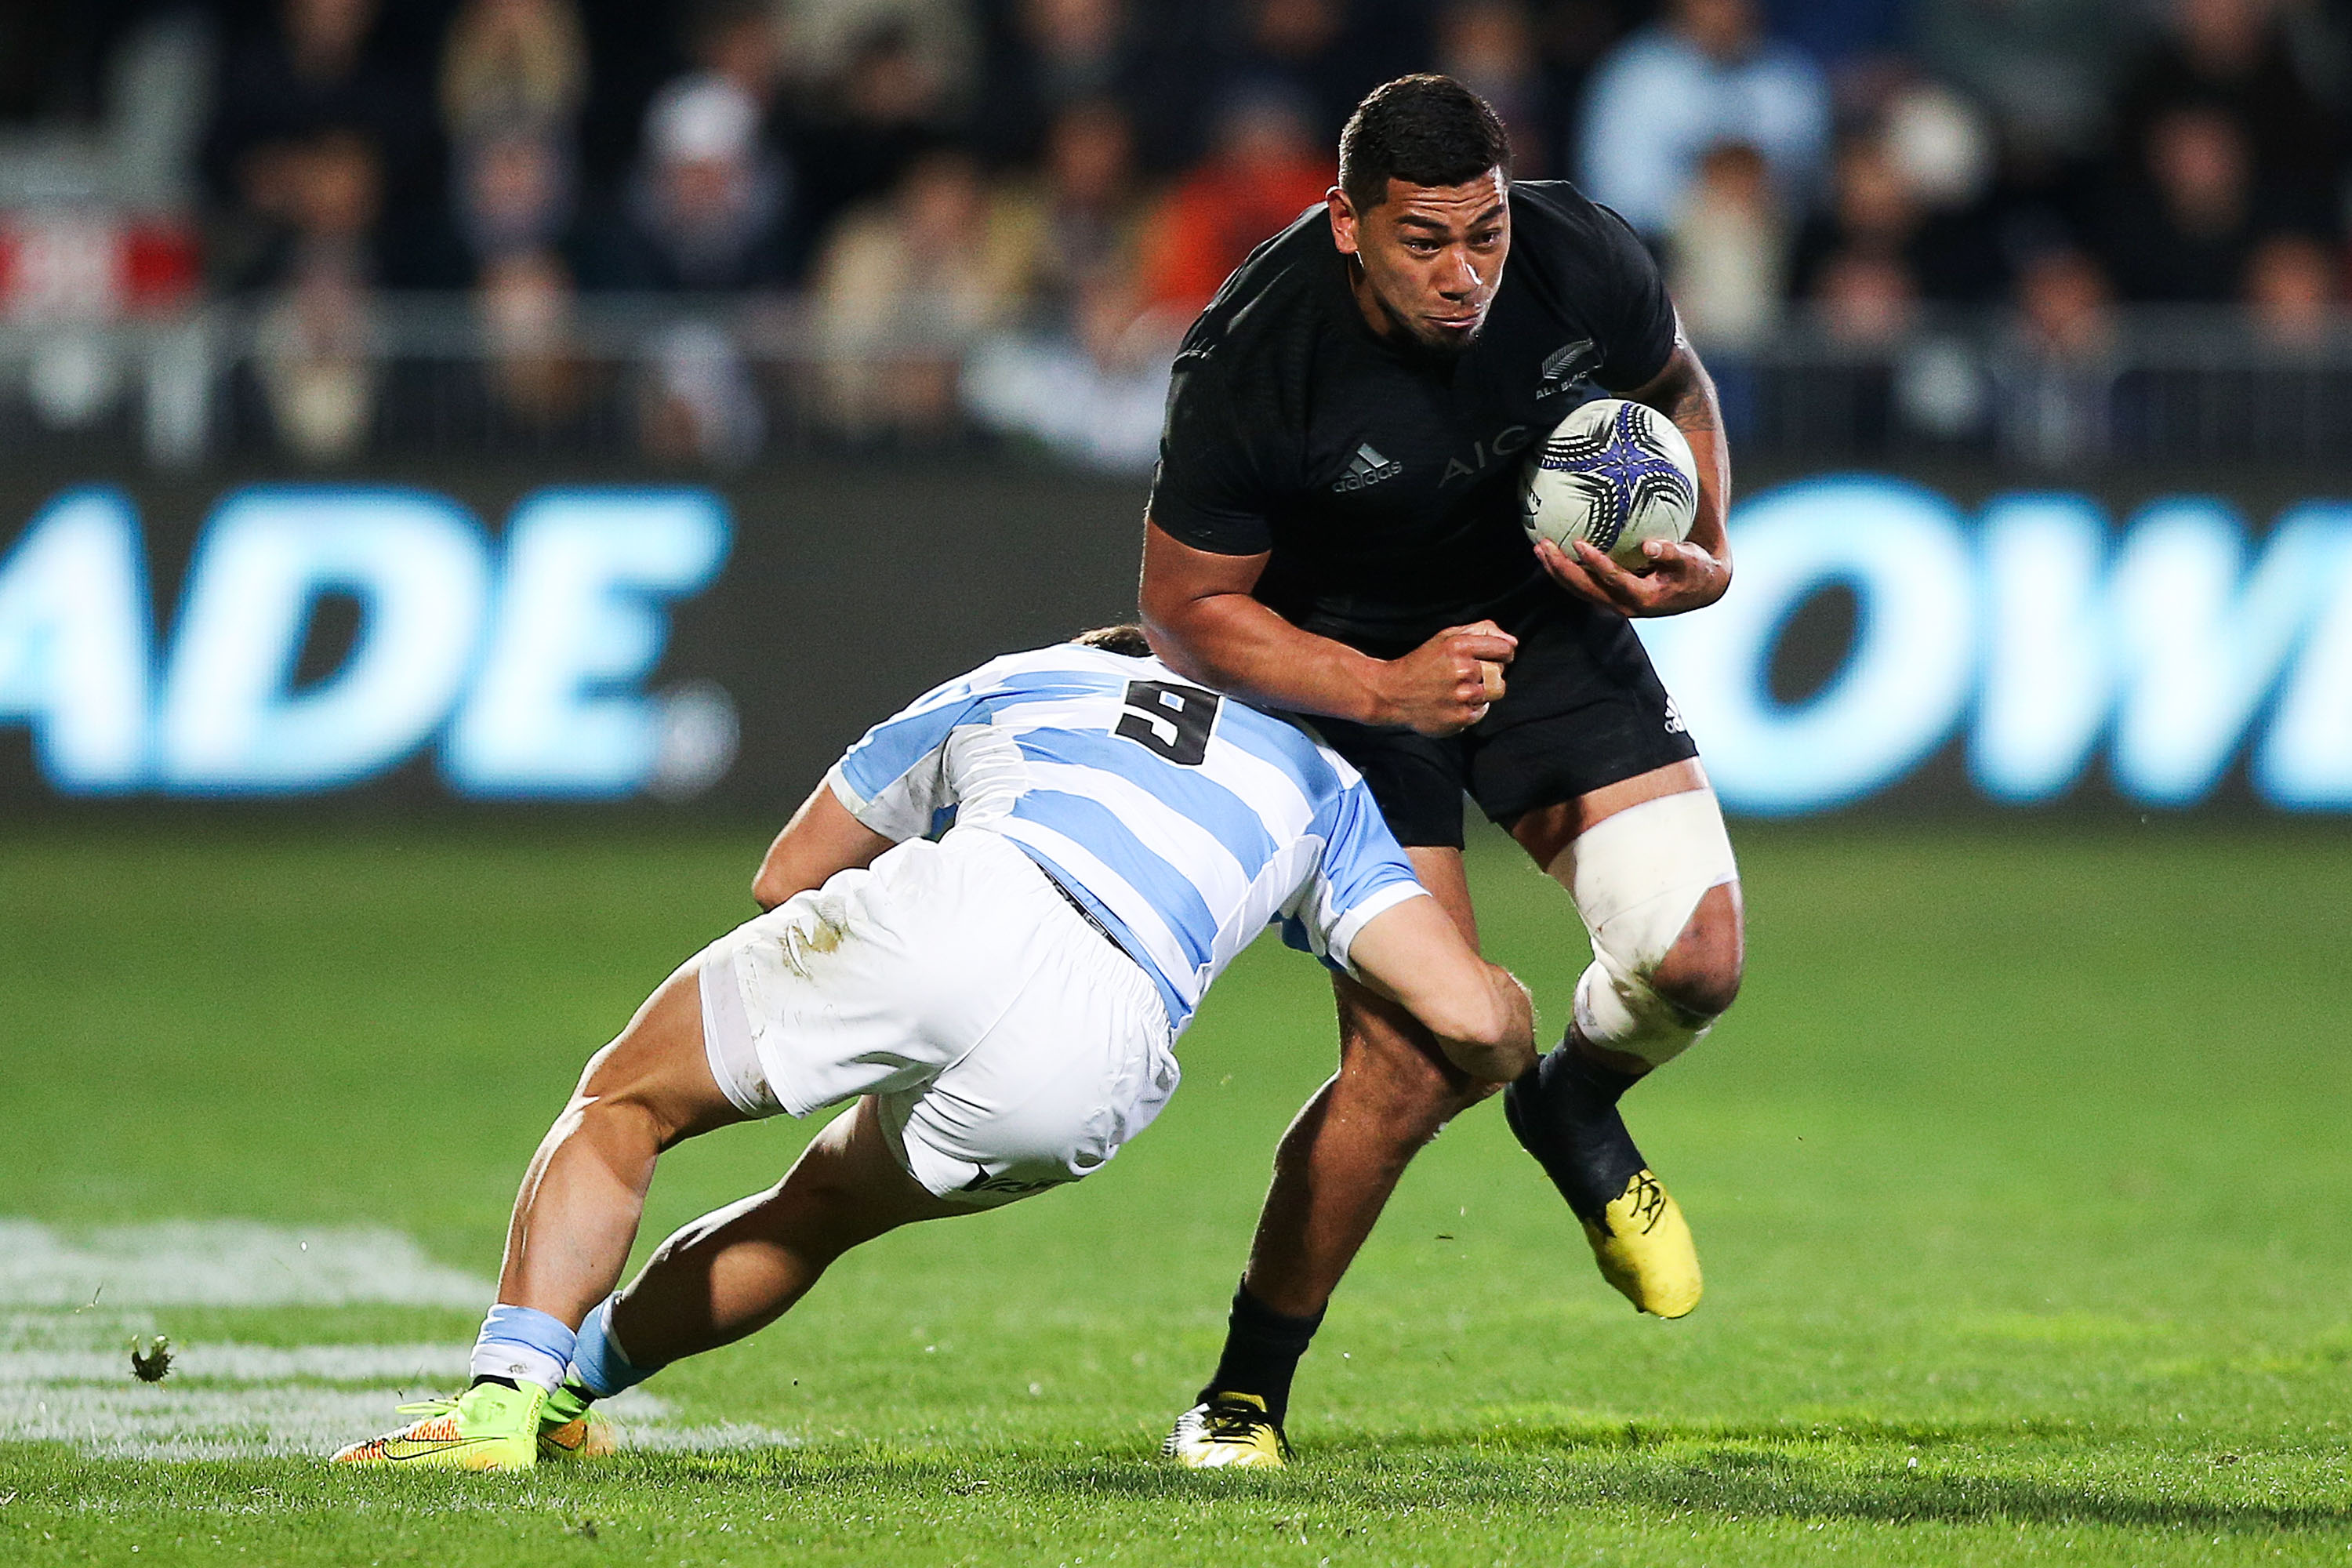 Bristol Rugby sign All Black's Charles Piutau